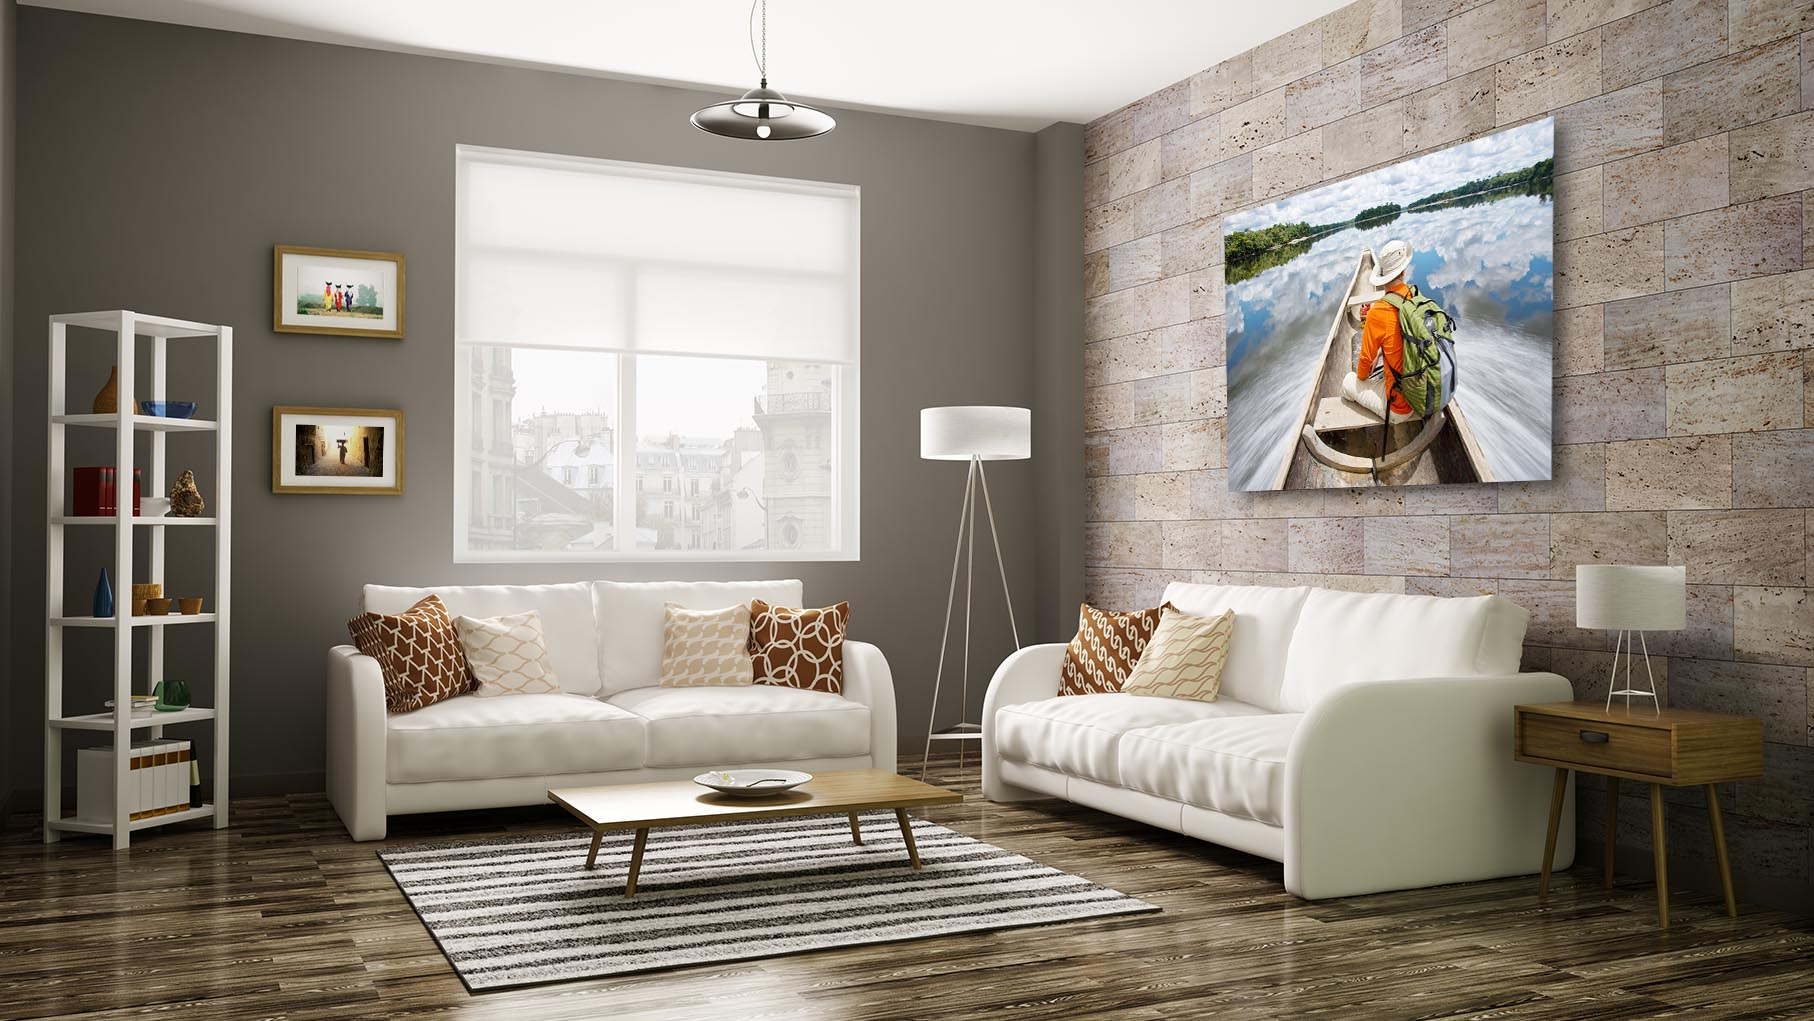 Modern living room interior 3d rendering. All images, photos, pictures used in this interior are my own works, all rights belong to me.